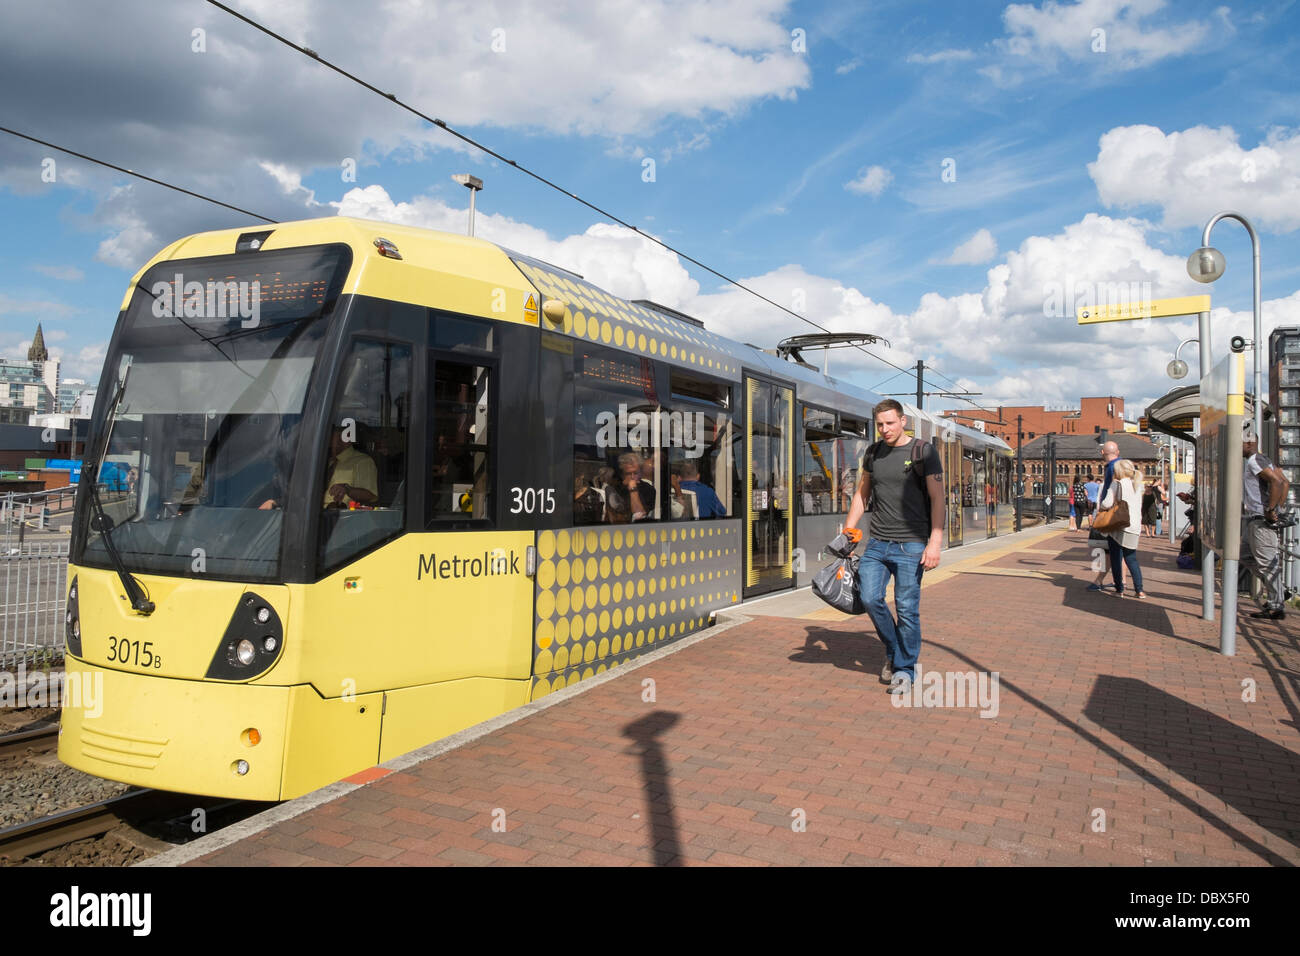 Metrolink tram to East Didsbury at Deansgate-Castlefield station in Manchester city centre, England, UK, Britain - Stock Image